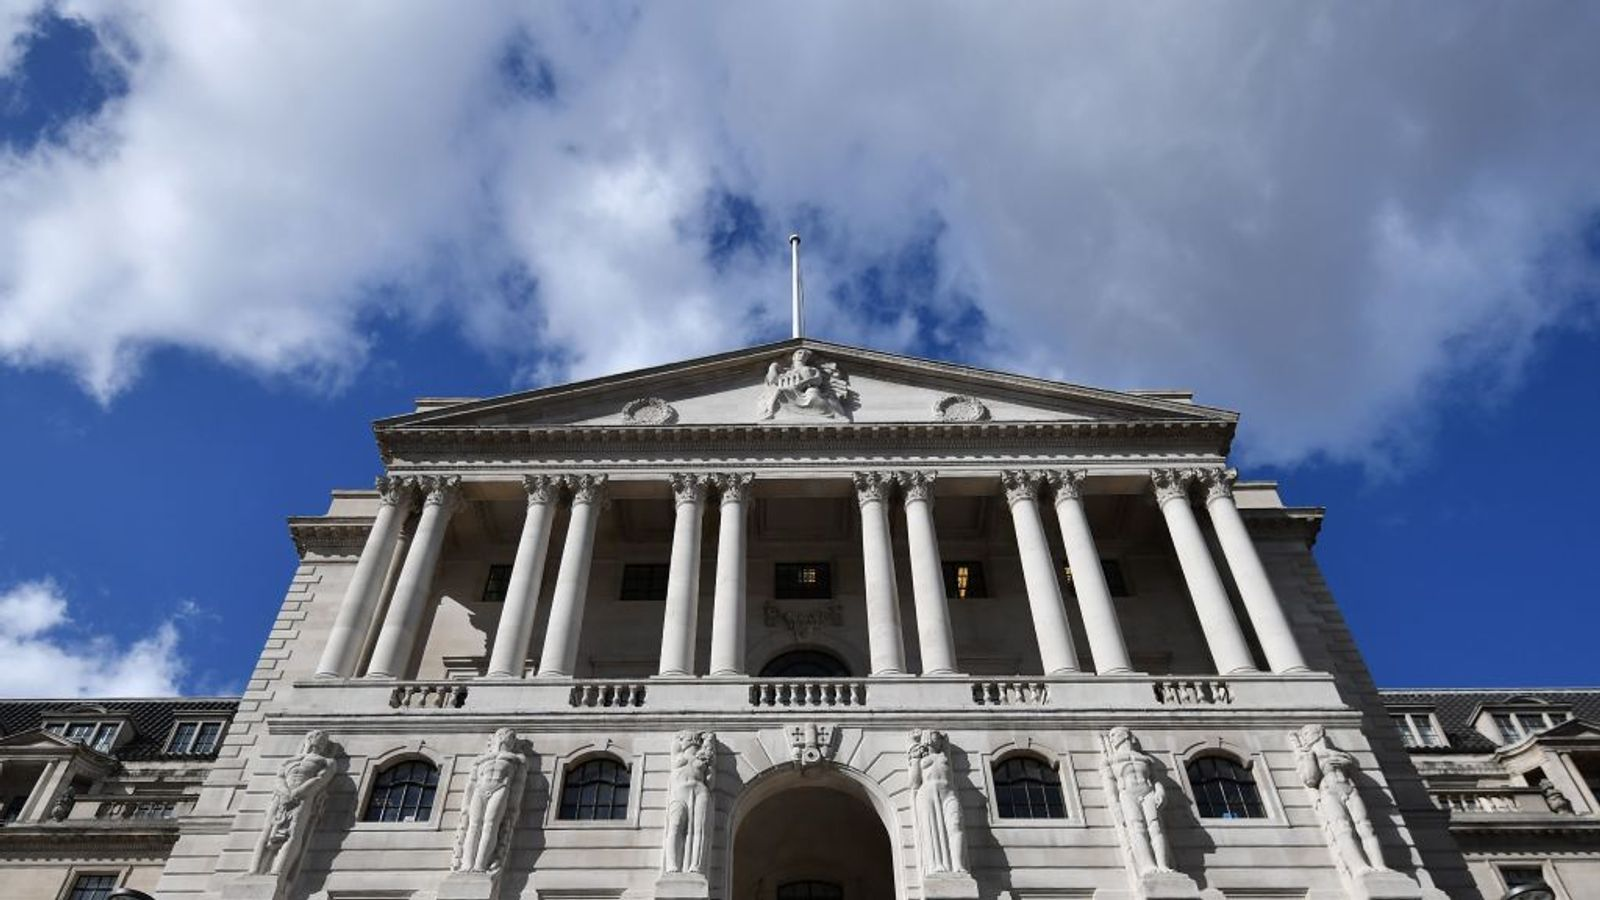 The Bank of England lowered the base rate of interest after the UK's Brexit vote in 2016